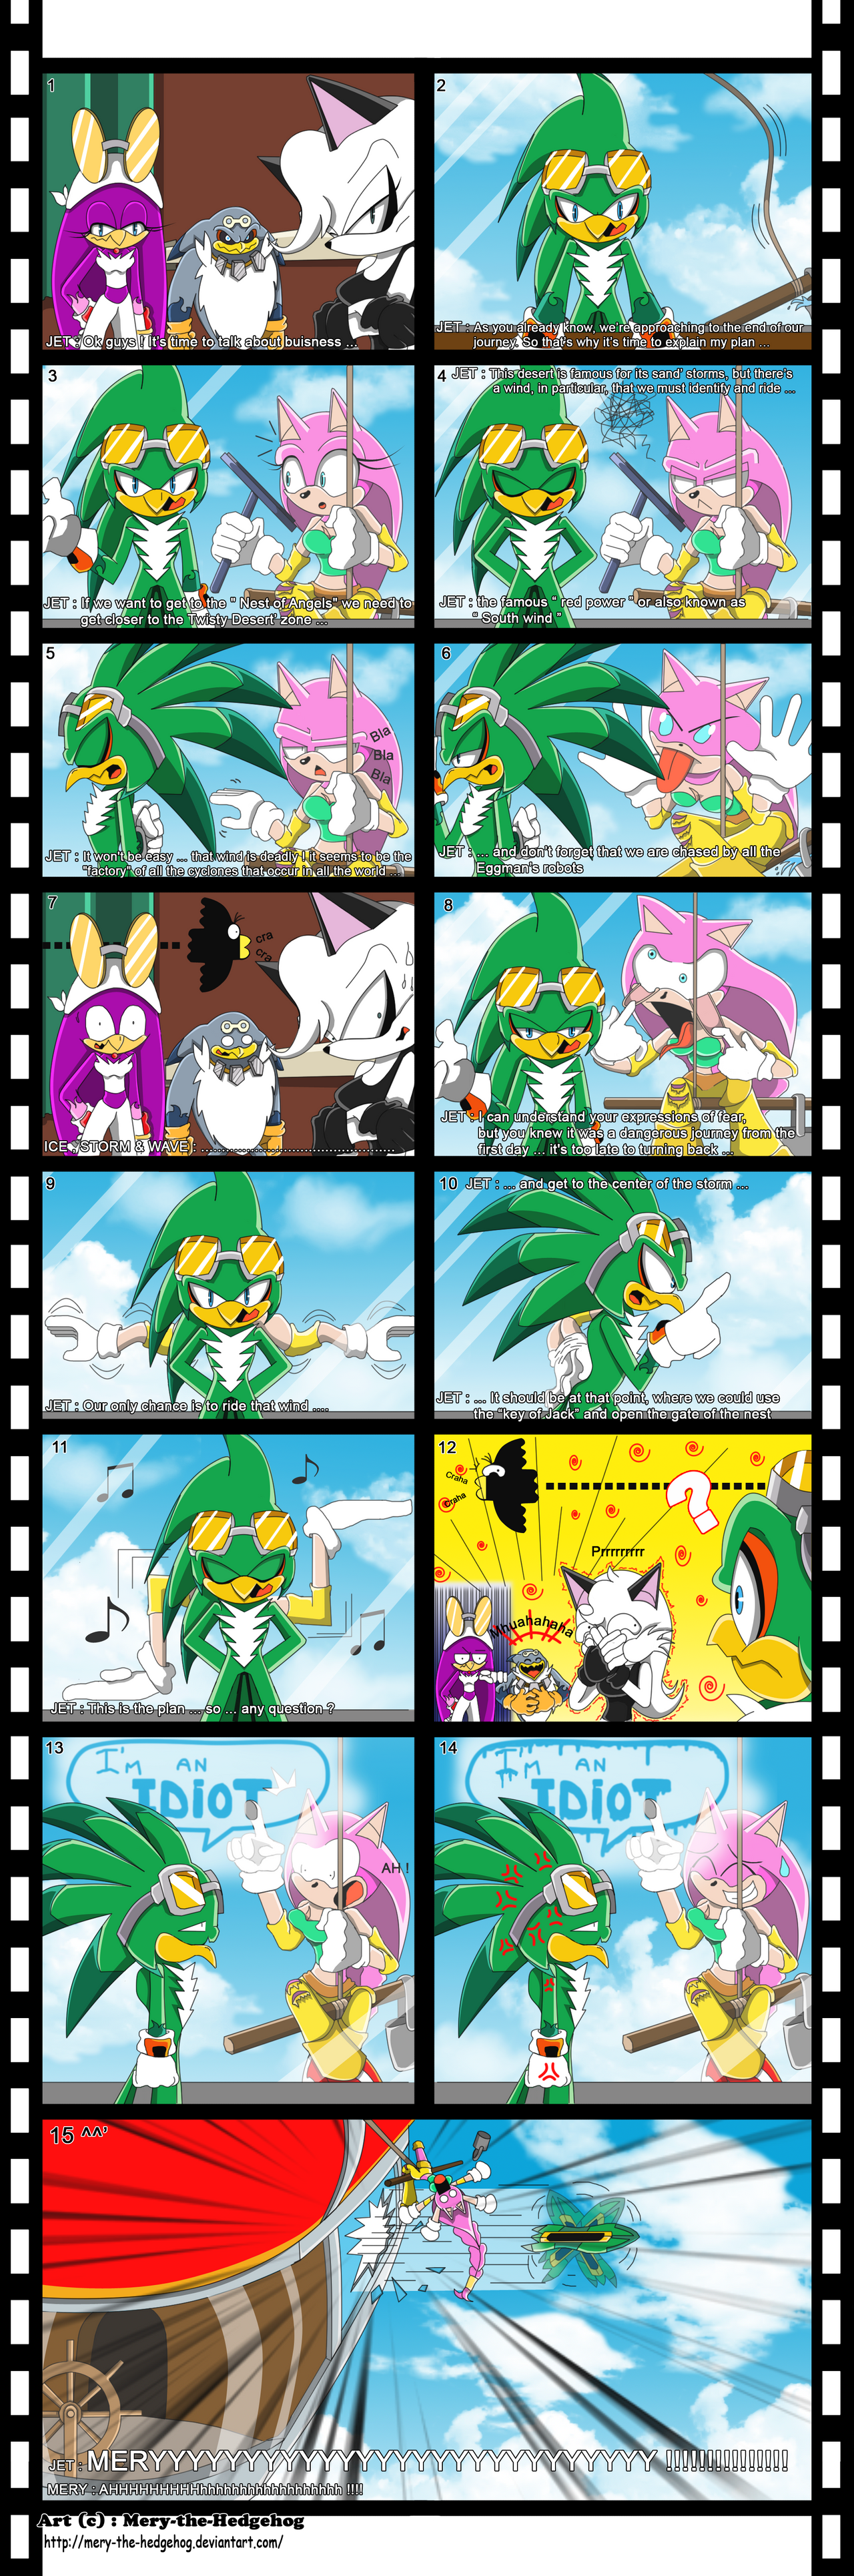 Jet The Hawk And Wave The Swallow The great plan of jet byJet And Wave